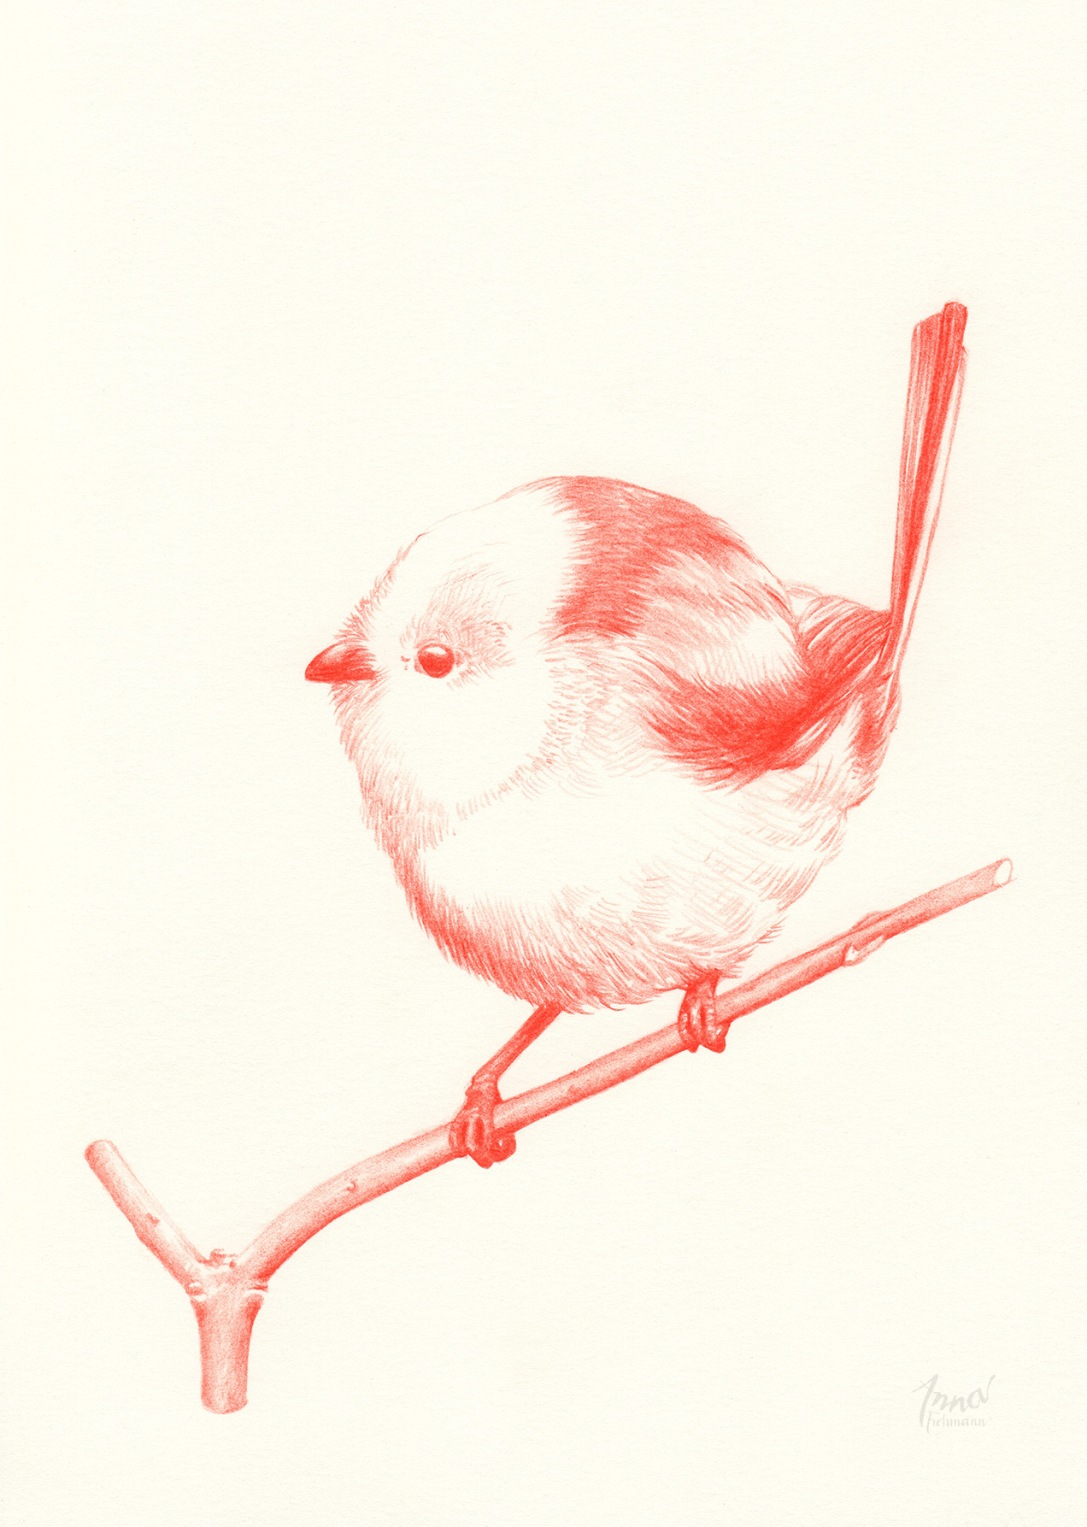 TITMOUSE | pencil on paper